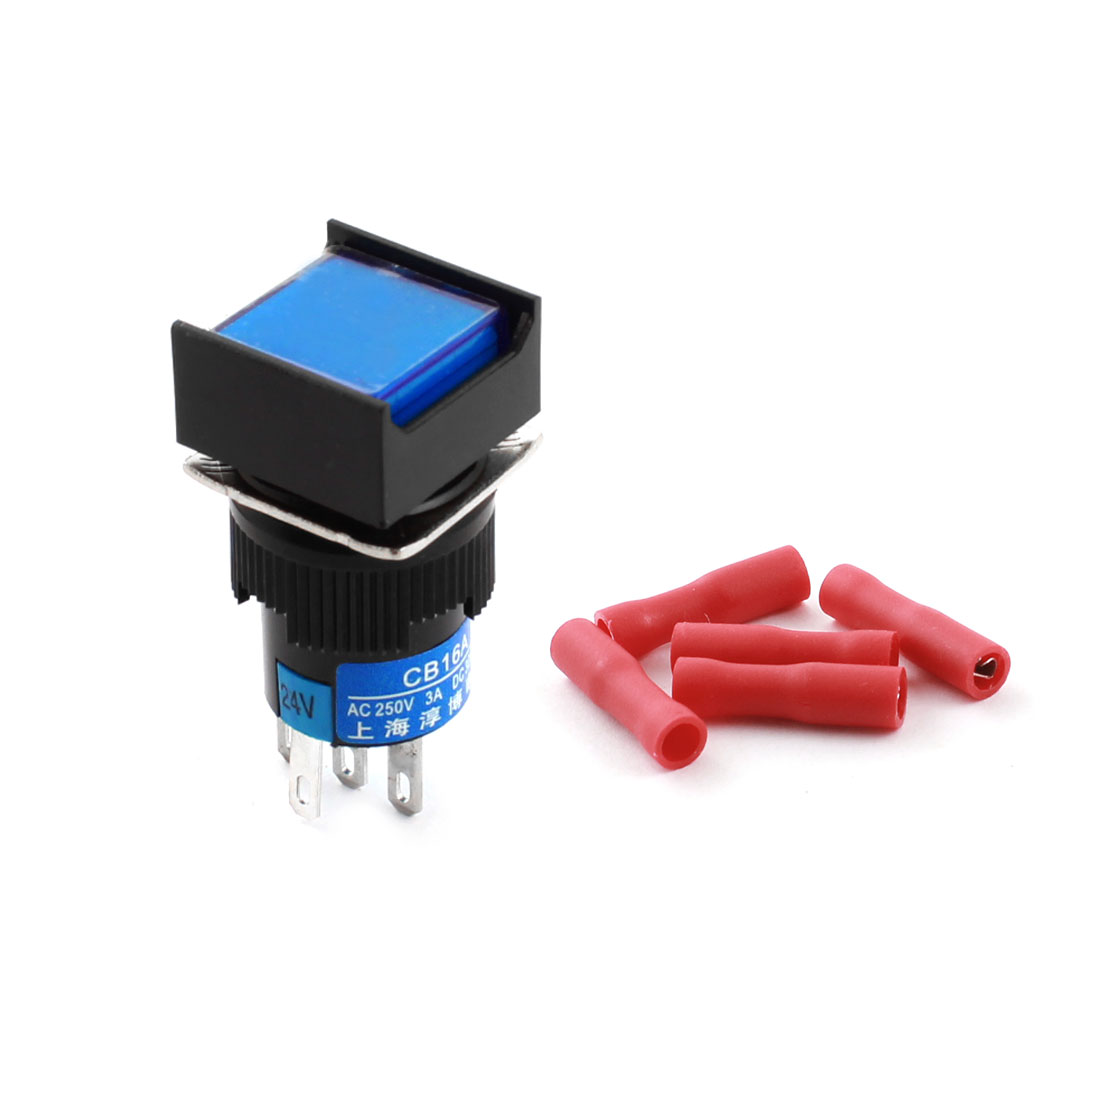 DC 24V Blue Lamp Locking Square Push Button Switch + Insulated Crimp Terminal